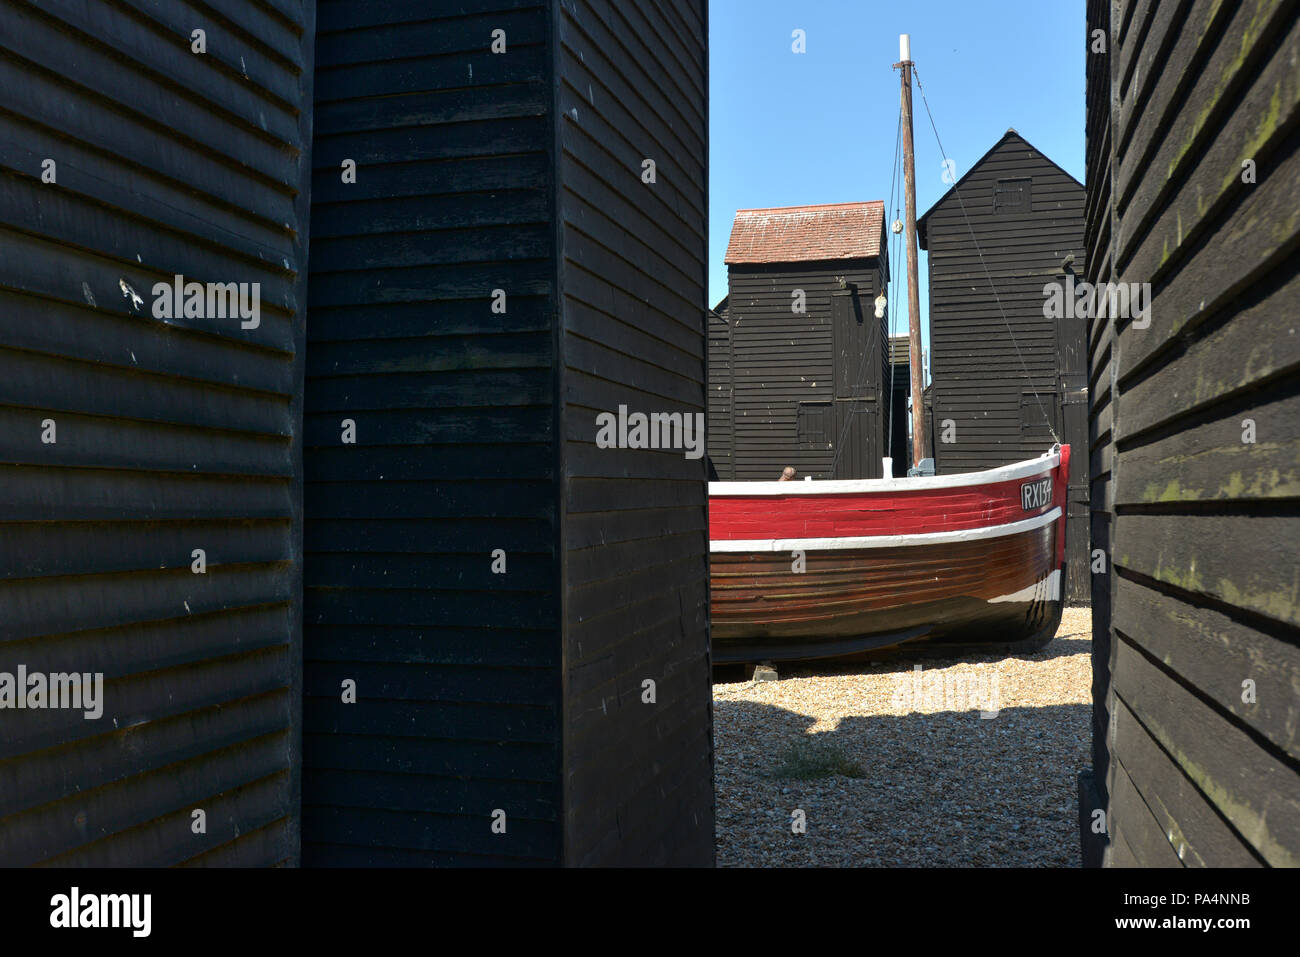 Fishing huts, net sheds or net shops, and historic boats in Hastings Old Town, East Sussex UK - Stock Image